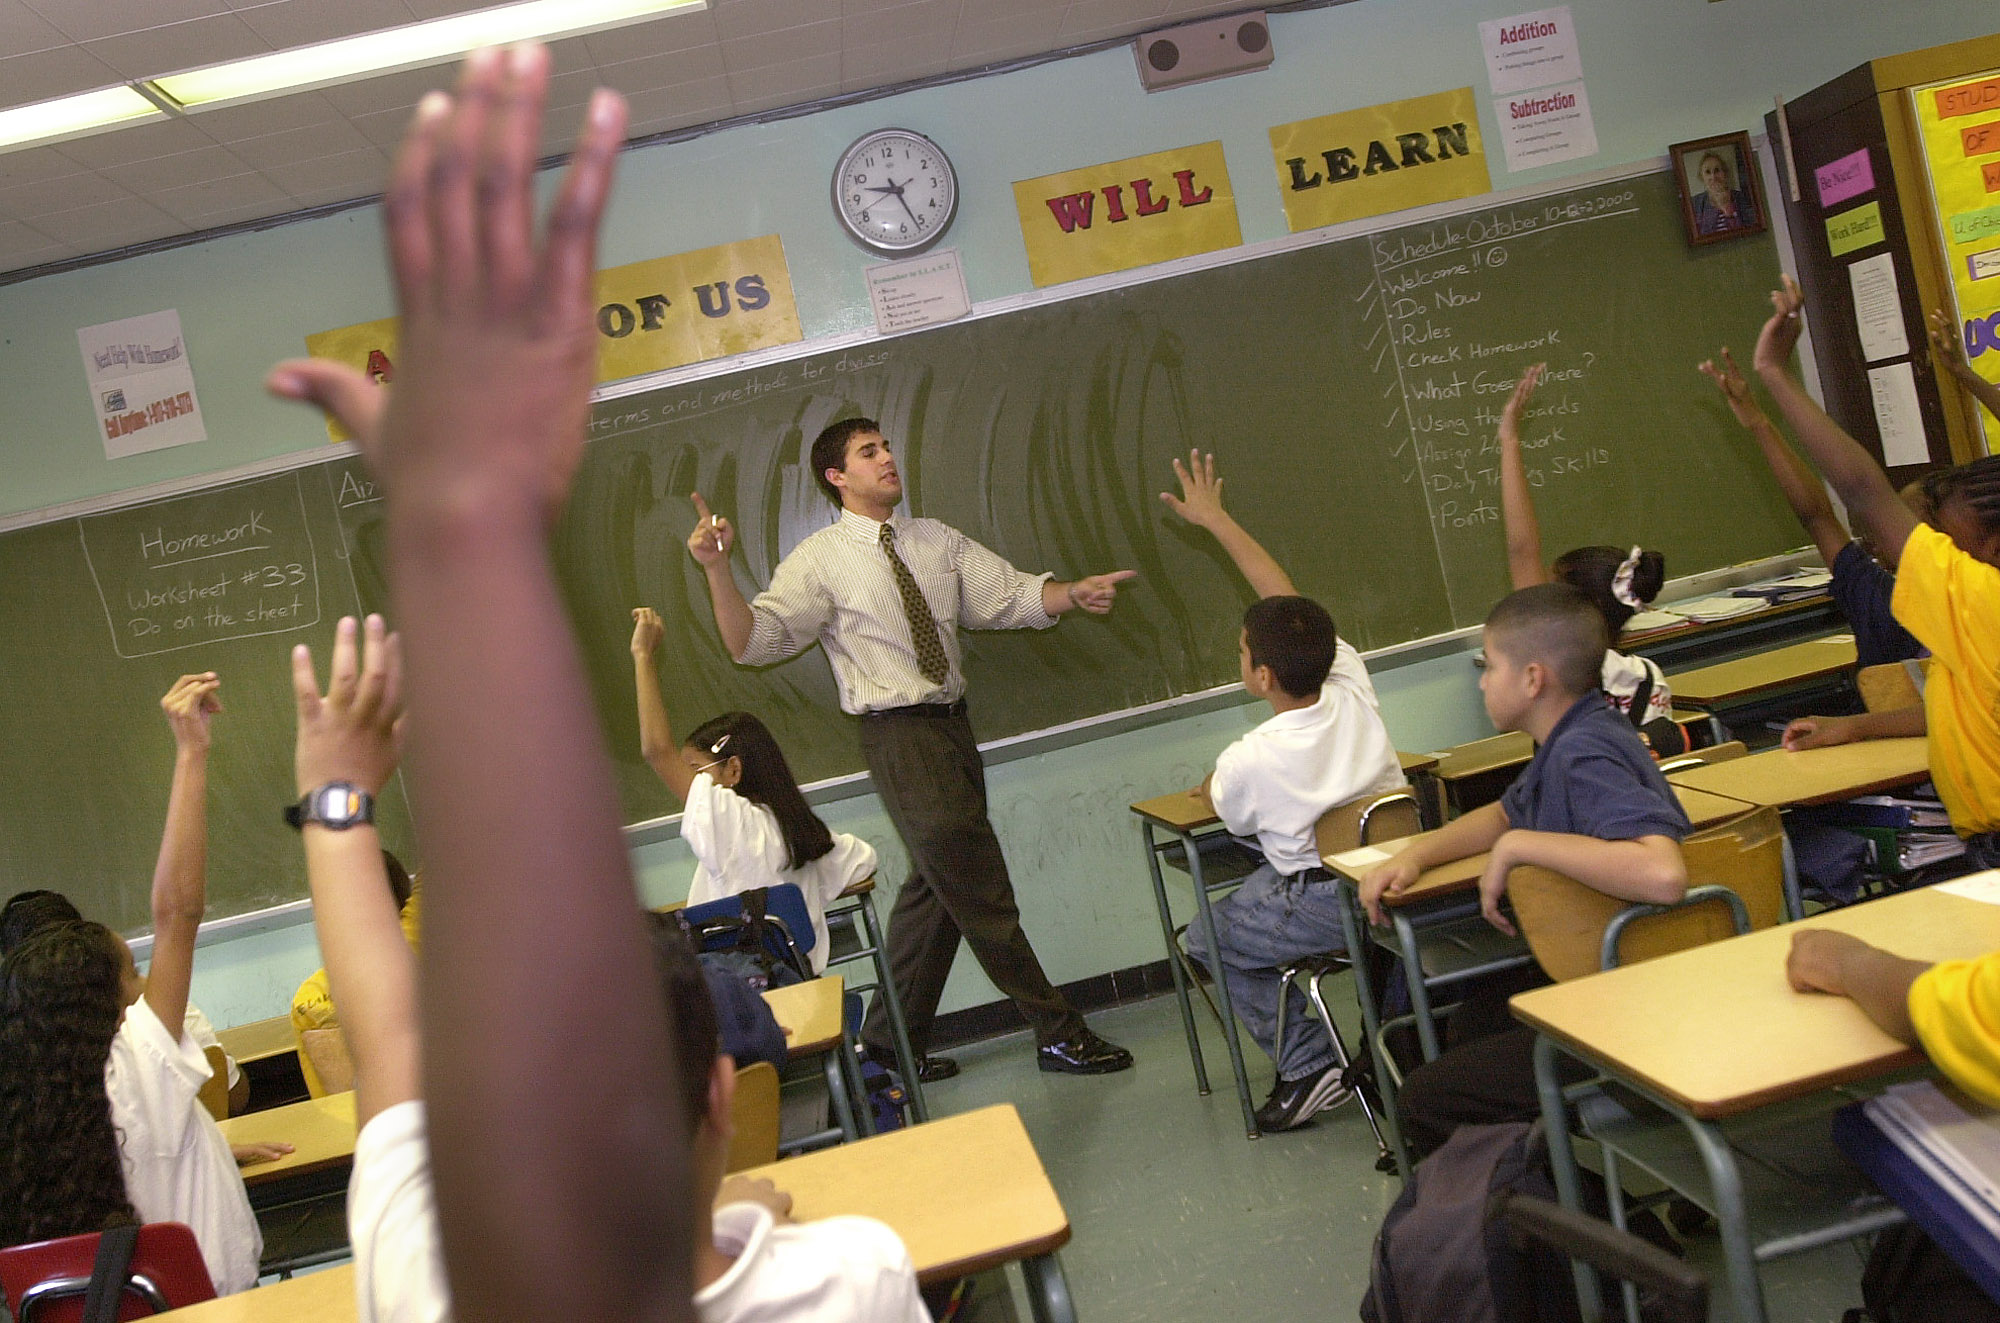 Bill would ban schools from suspending, expelling some kids